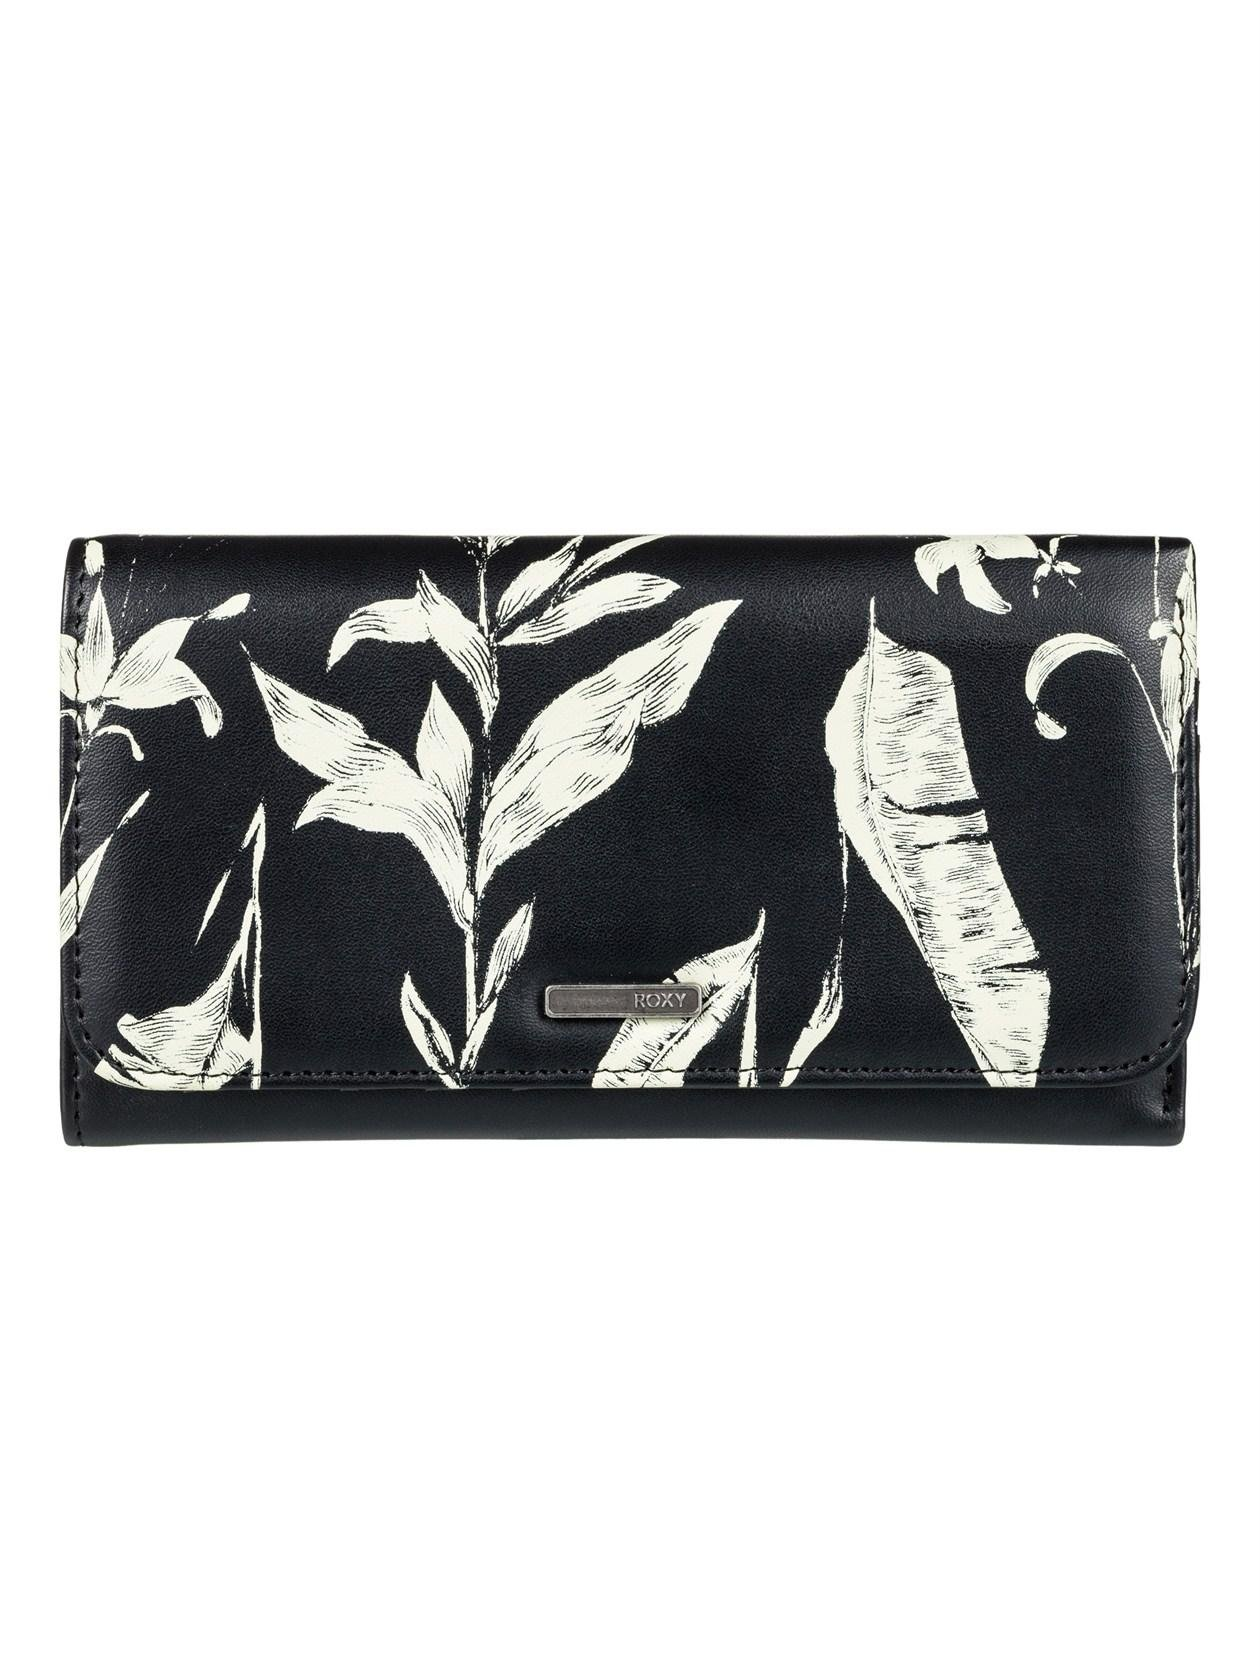 Roxy My Long Eyes Womens Purse One Size Anthracite Love Letter